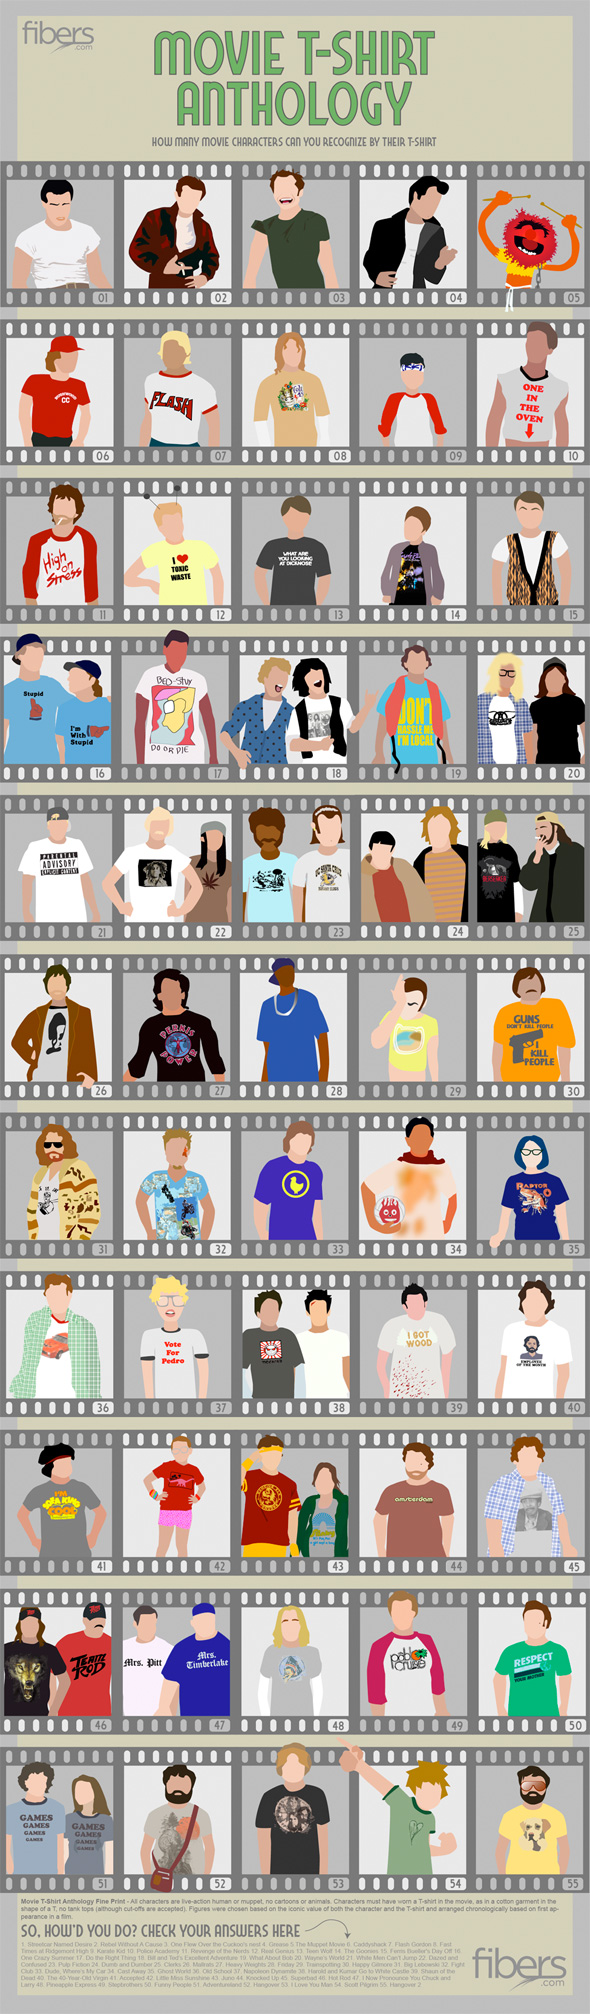 movietshirt-guess-poster-full.jpg